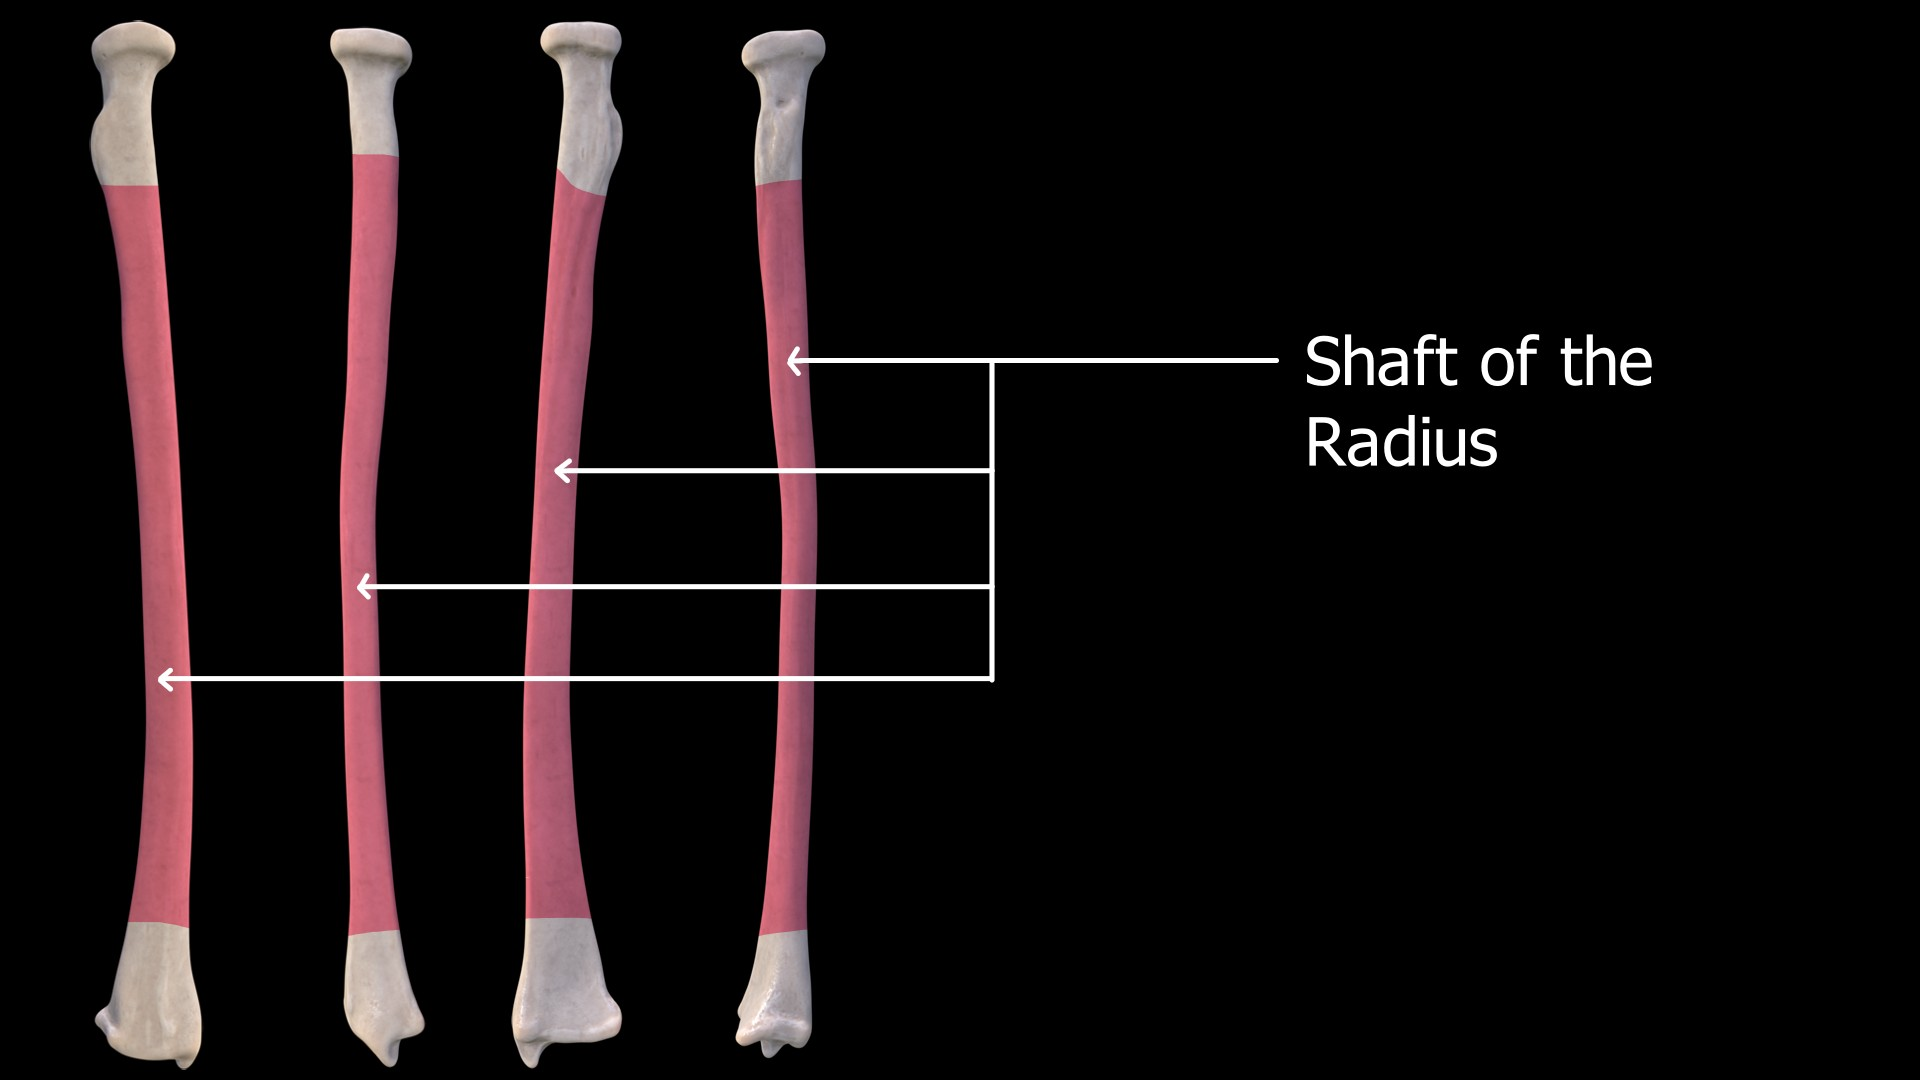 Shaft of the Radius